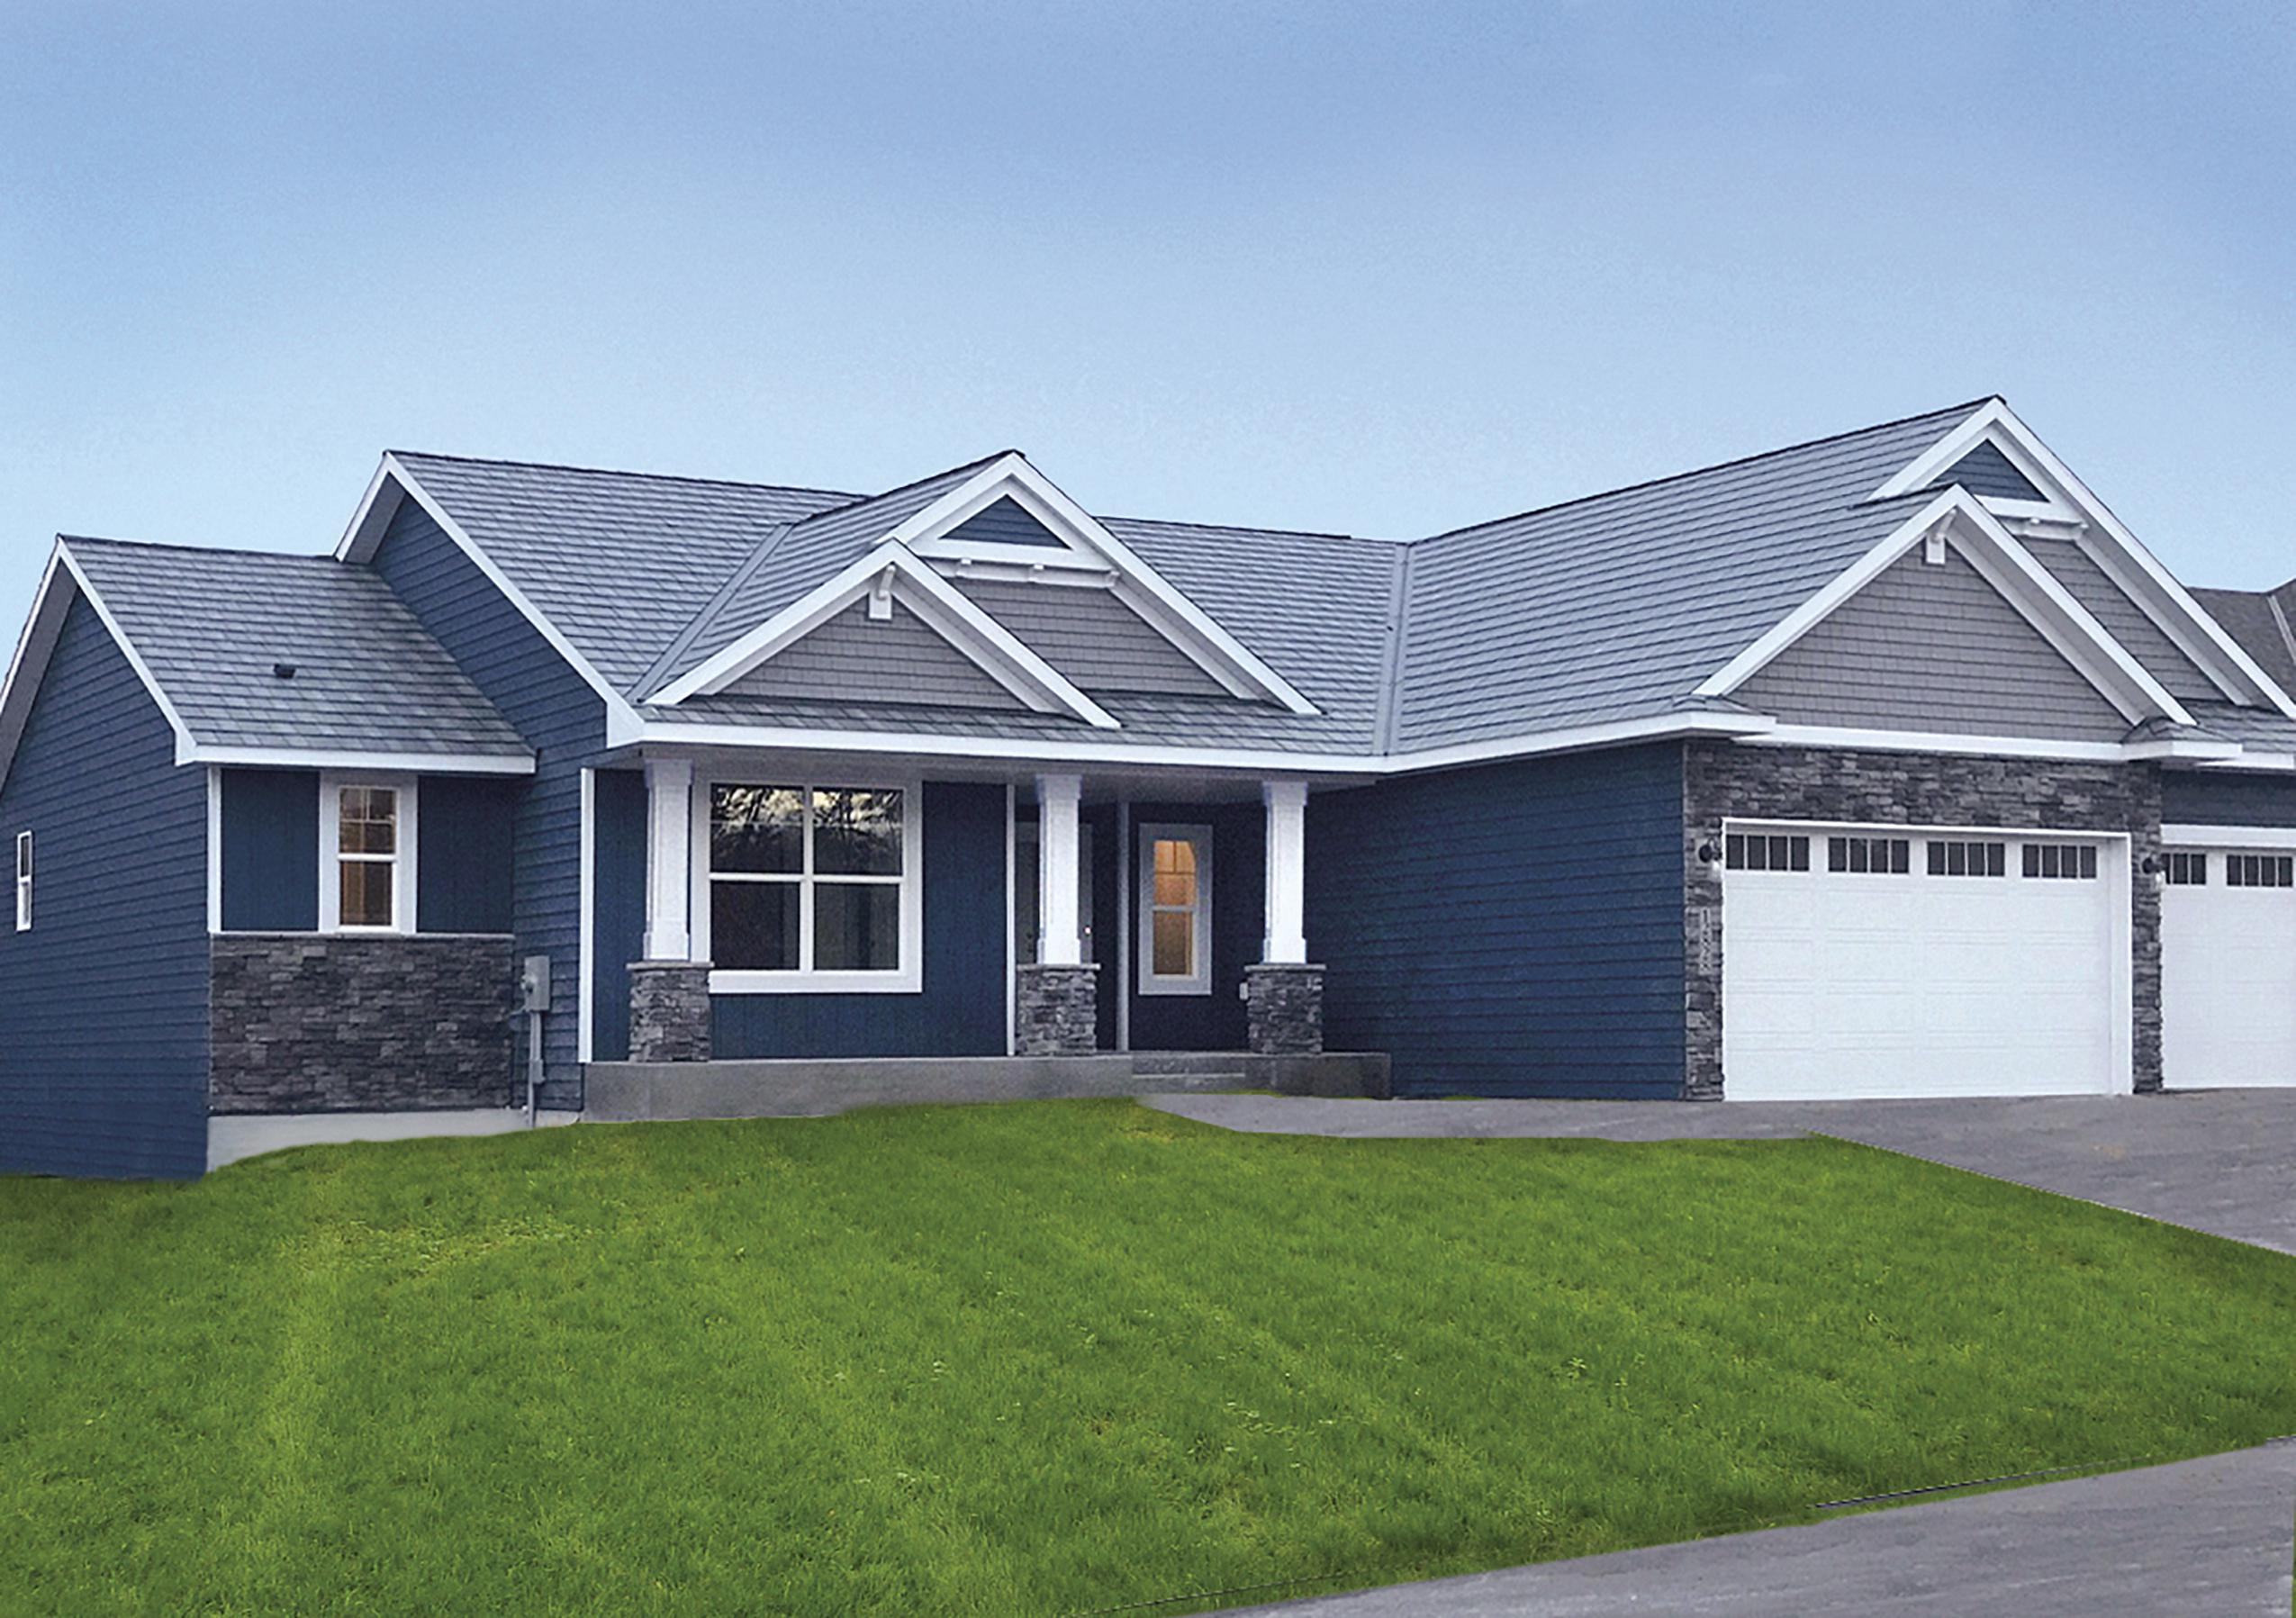 Edco products steel roofing and siding timeless style for Metal wood siding